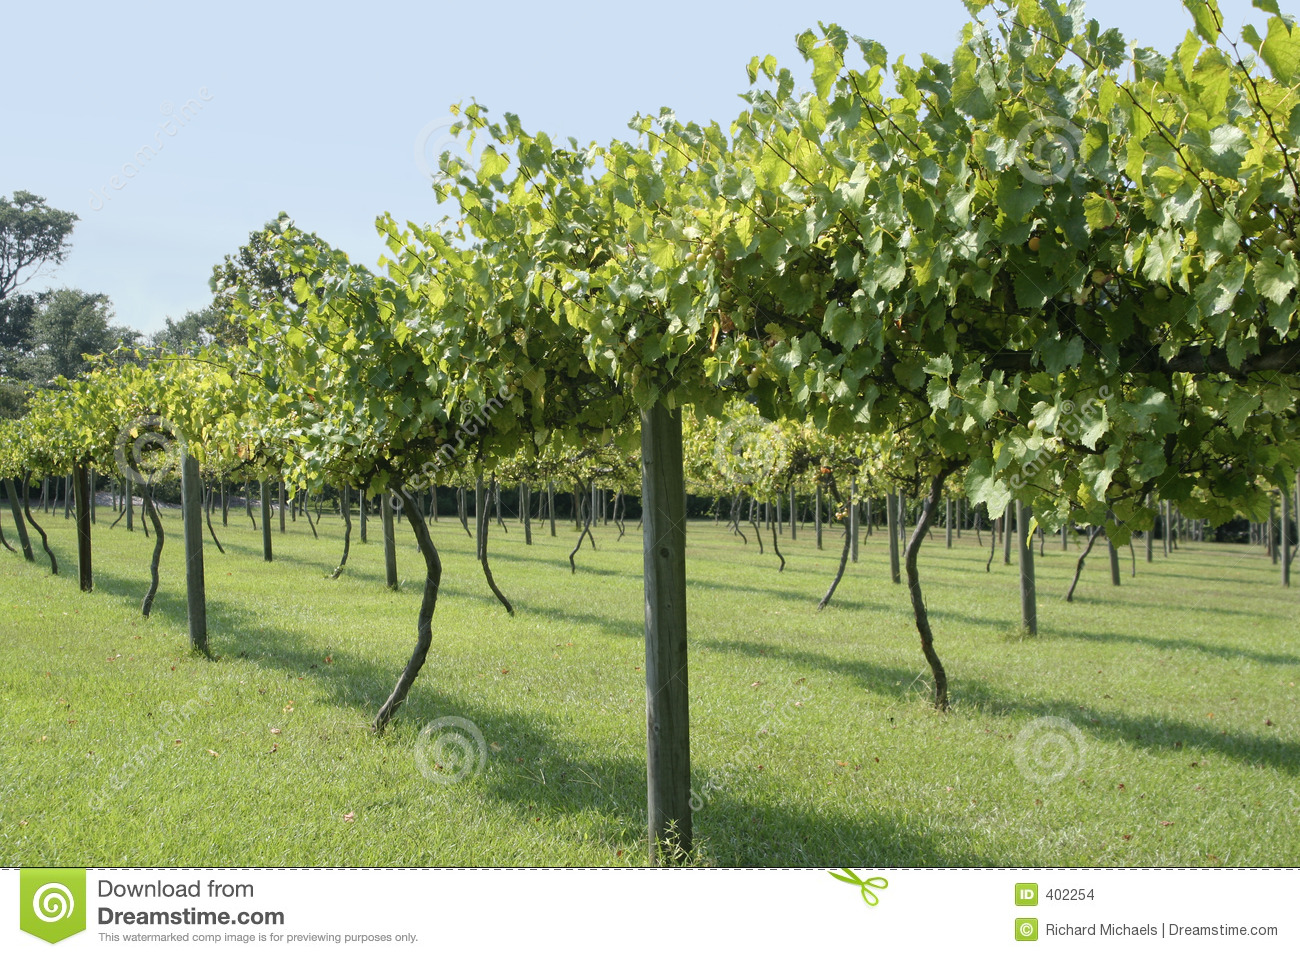 charming how to grow muscadine grapes Part - 9: charming how to grow muscadine grapes idea